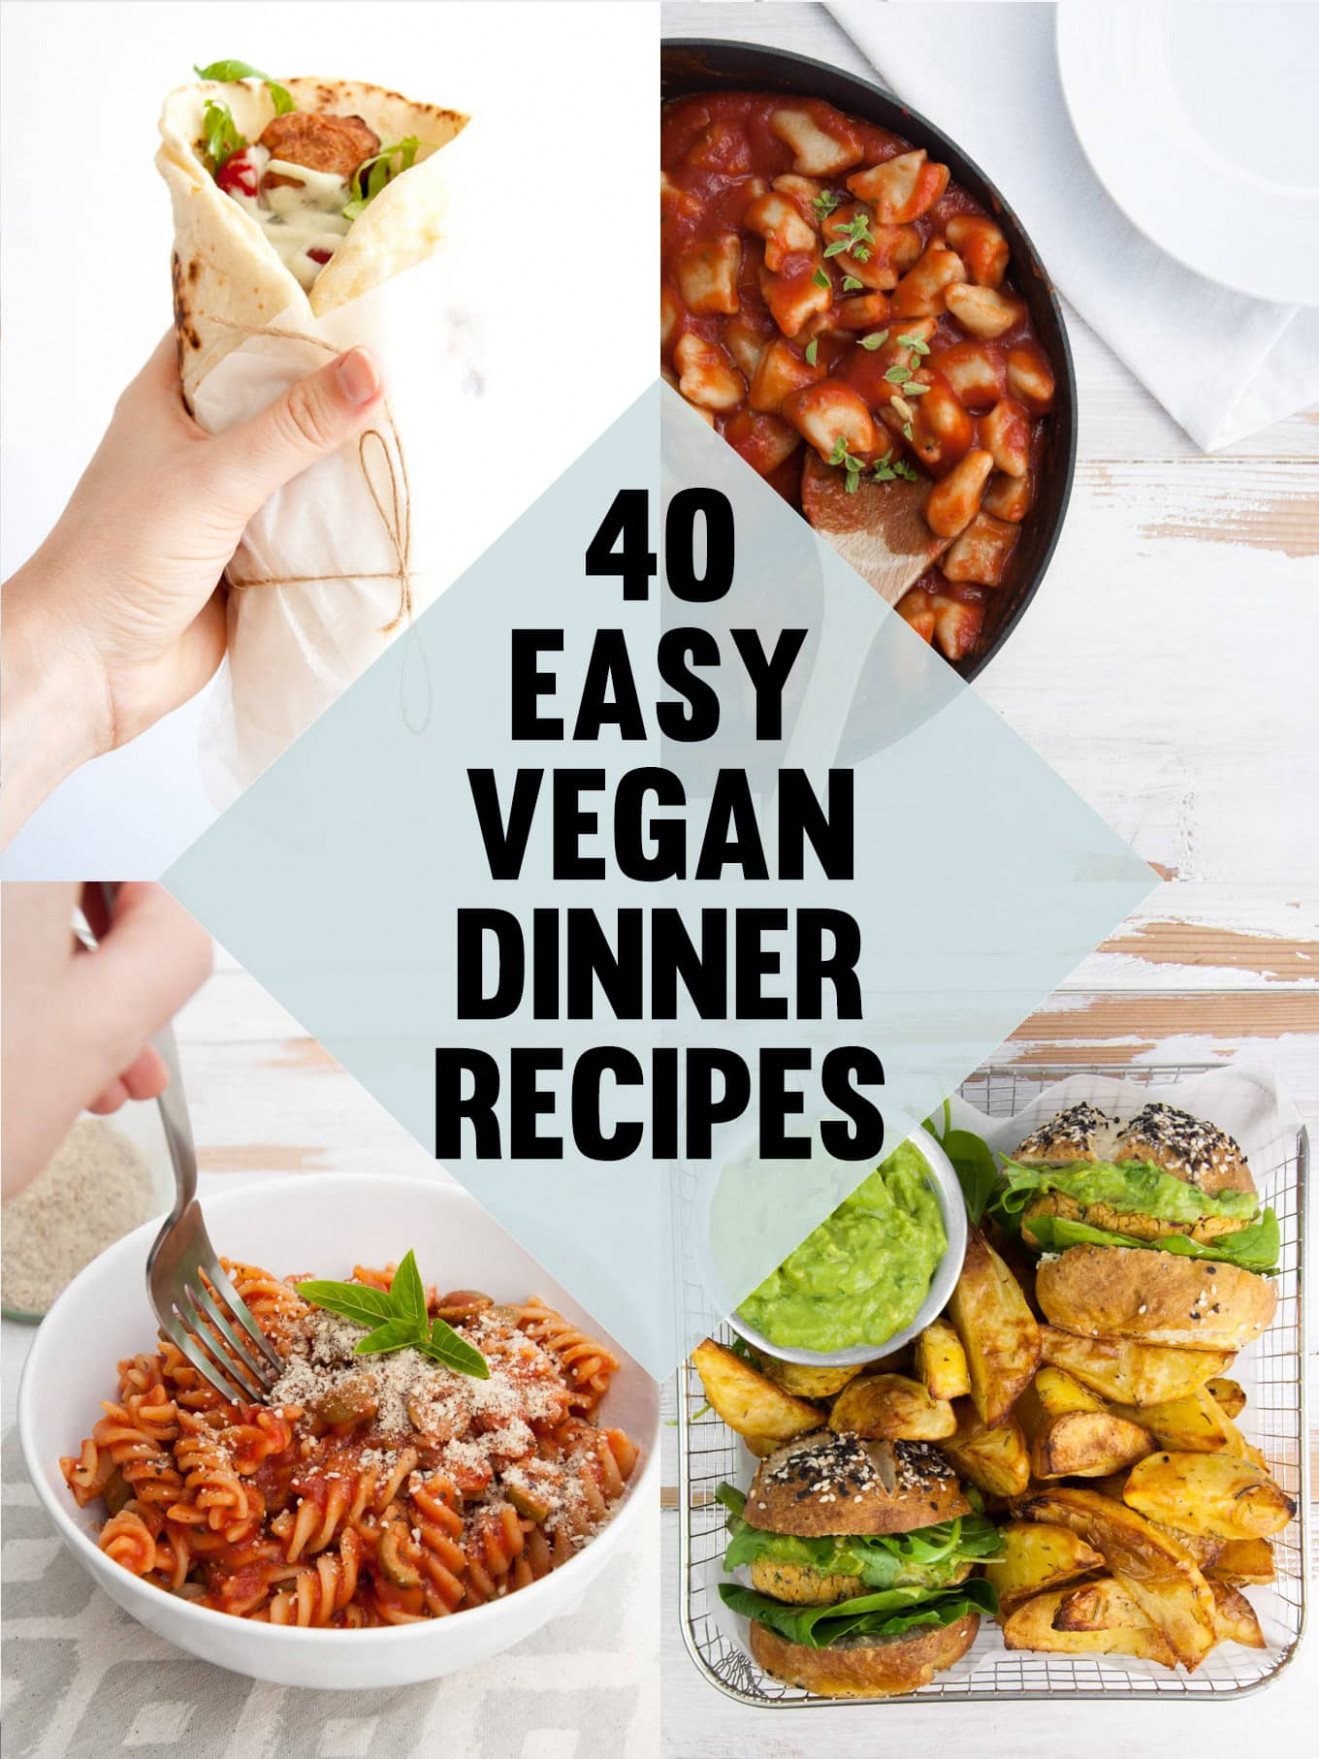 40 Easy Vegan Dinner Recipes | Elephantastic Vegan